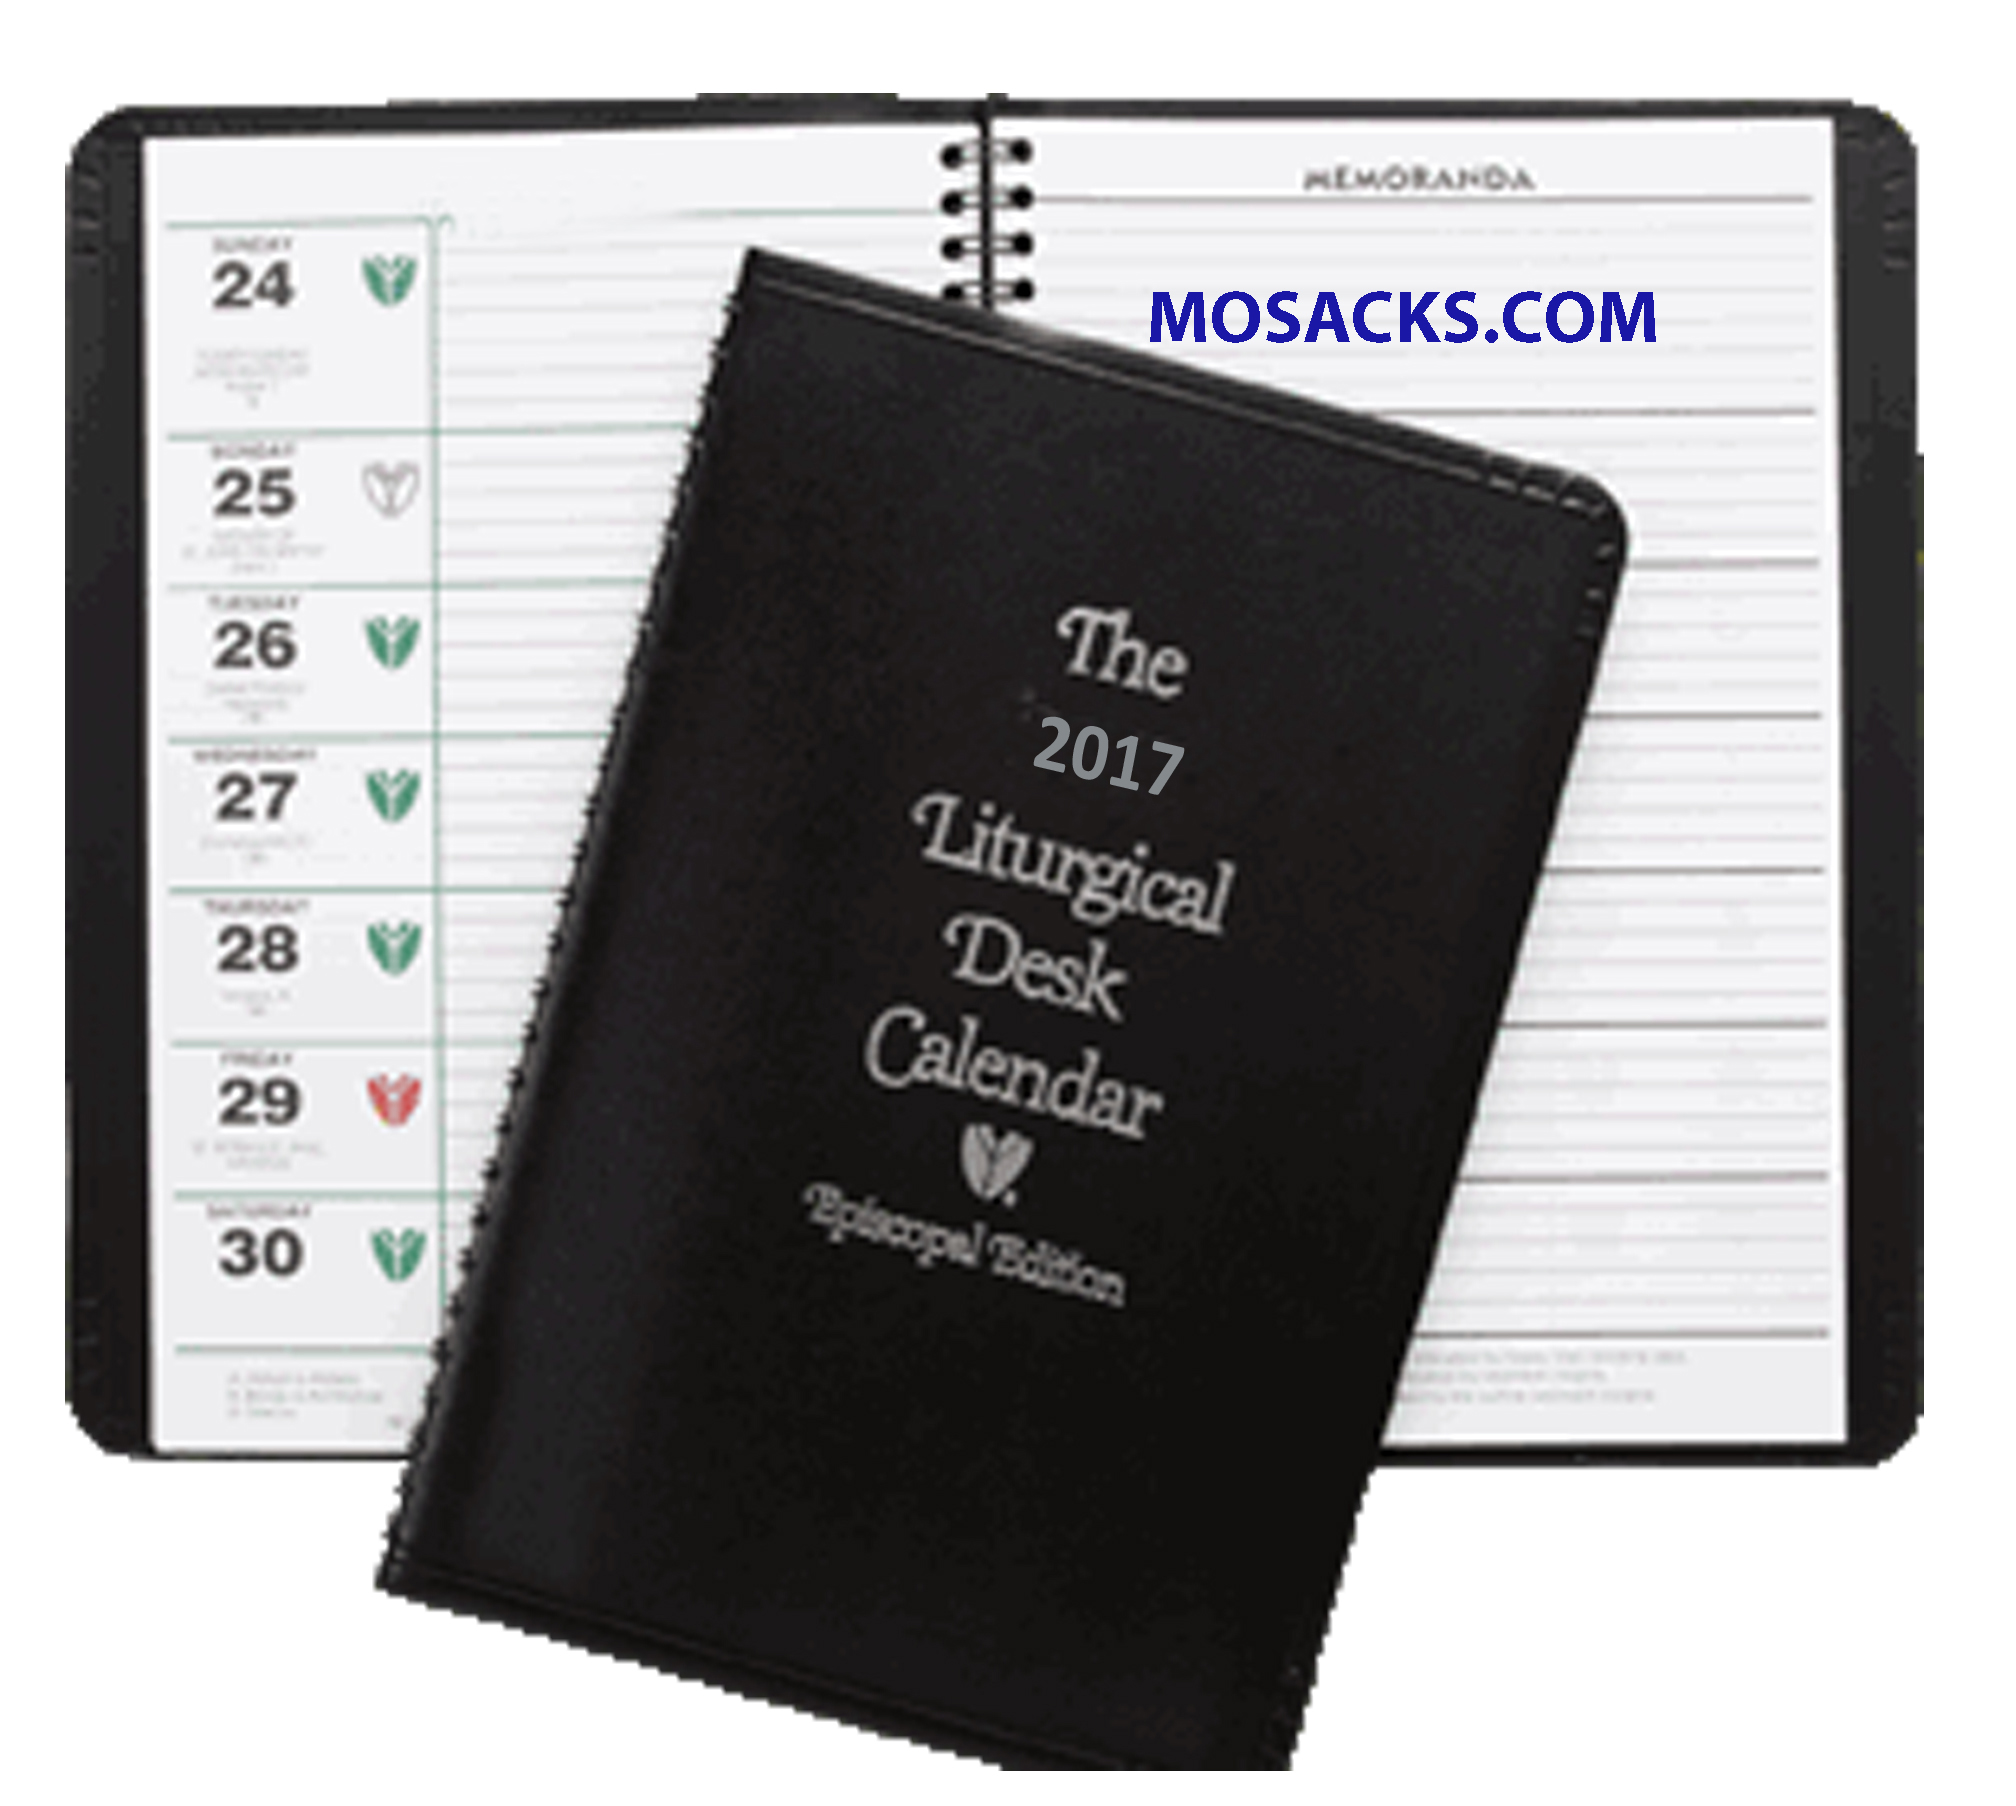 Liturgical Desk Calendar Episcopal Edition 2017